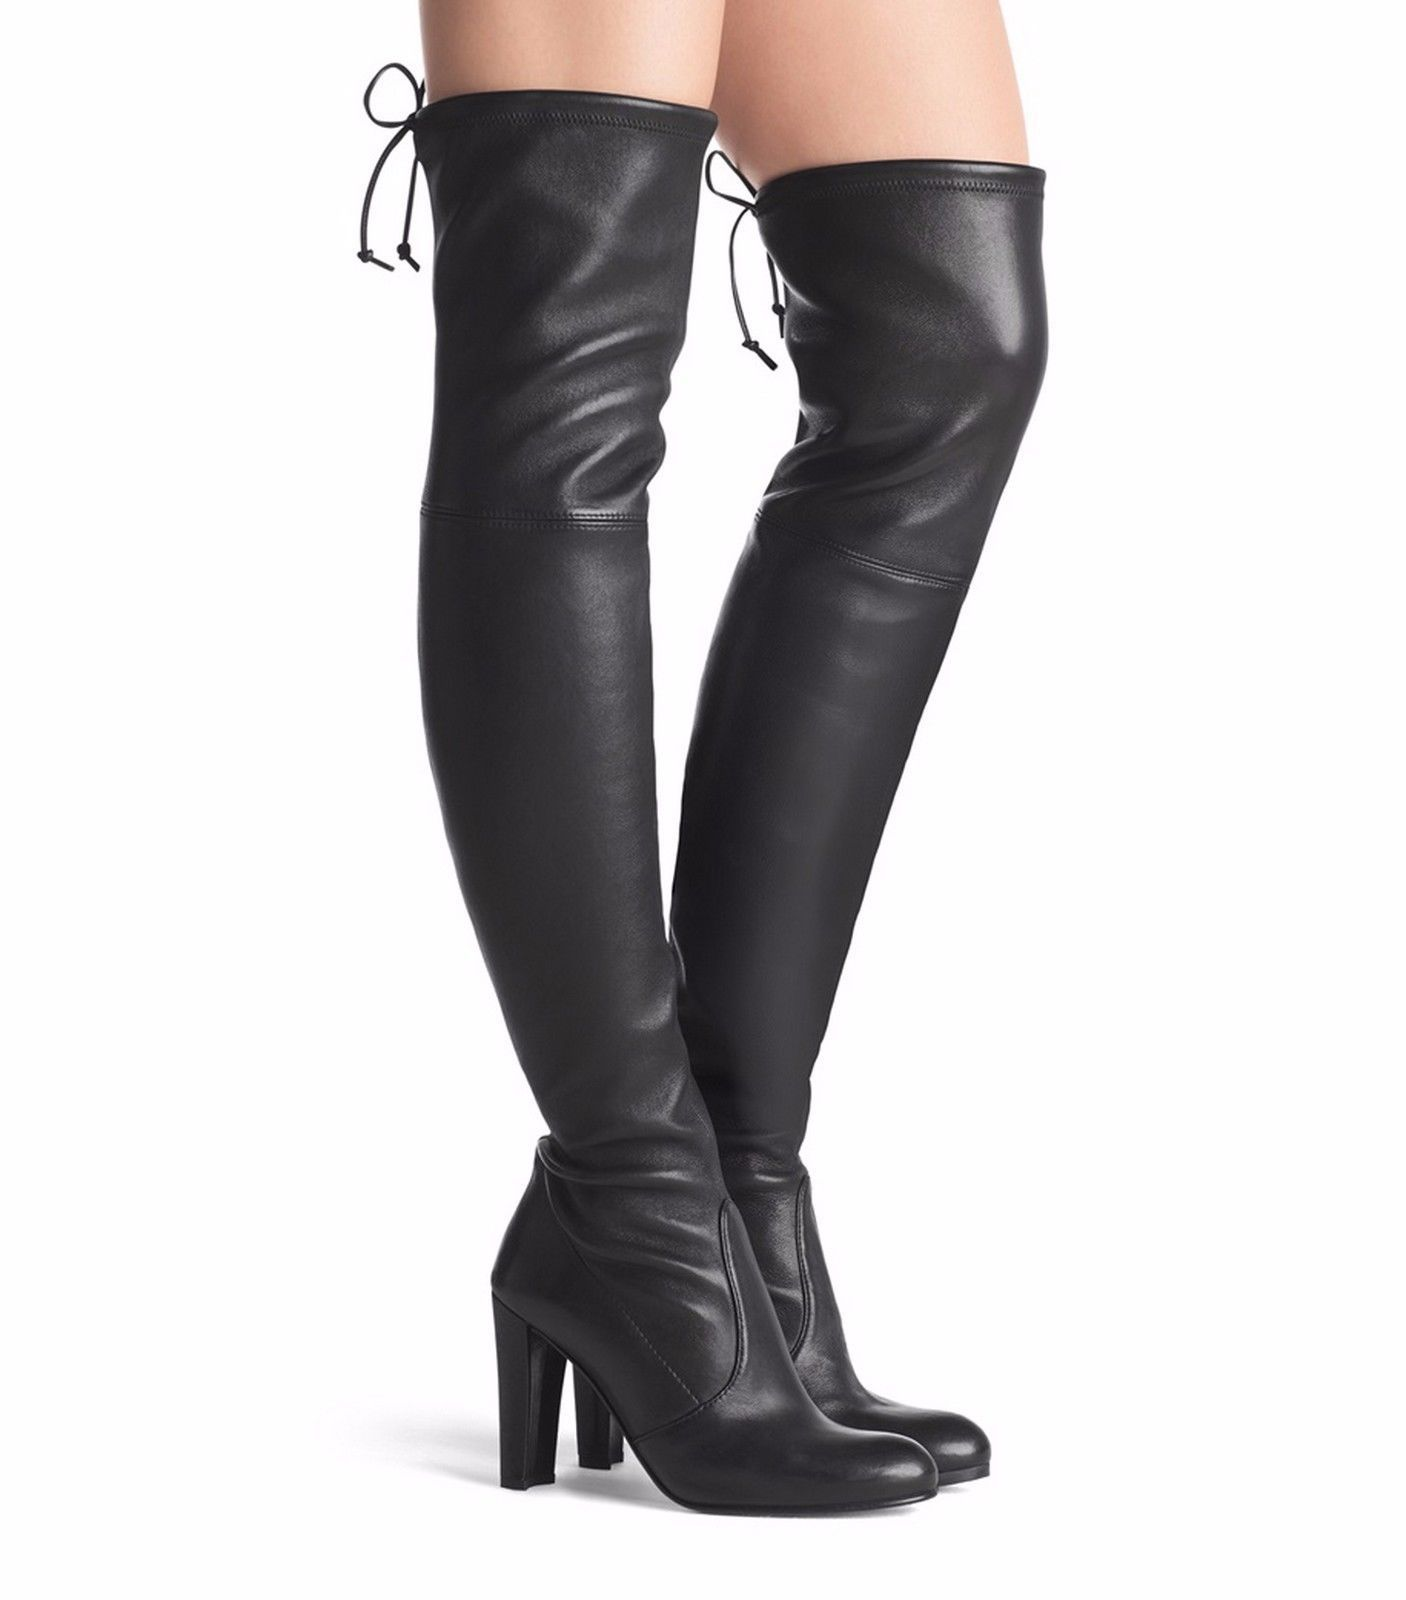 NEW Stuart Weitzman Highland leather over-the-knee boot Shoe, Black, US 10,  $875